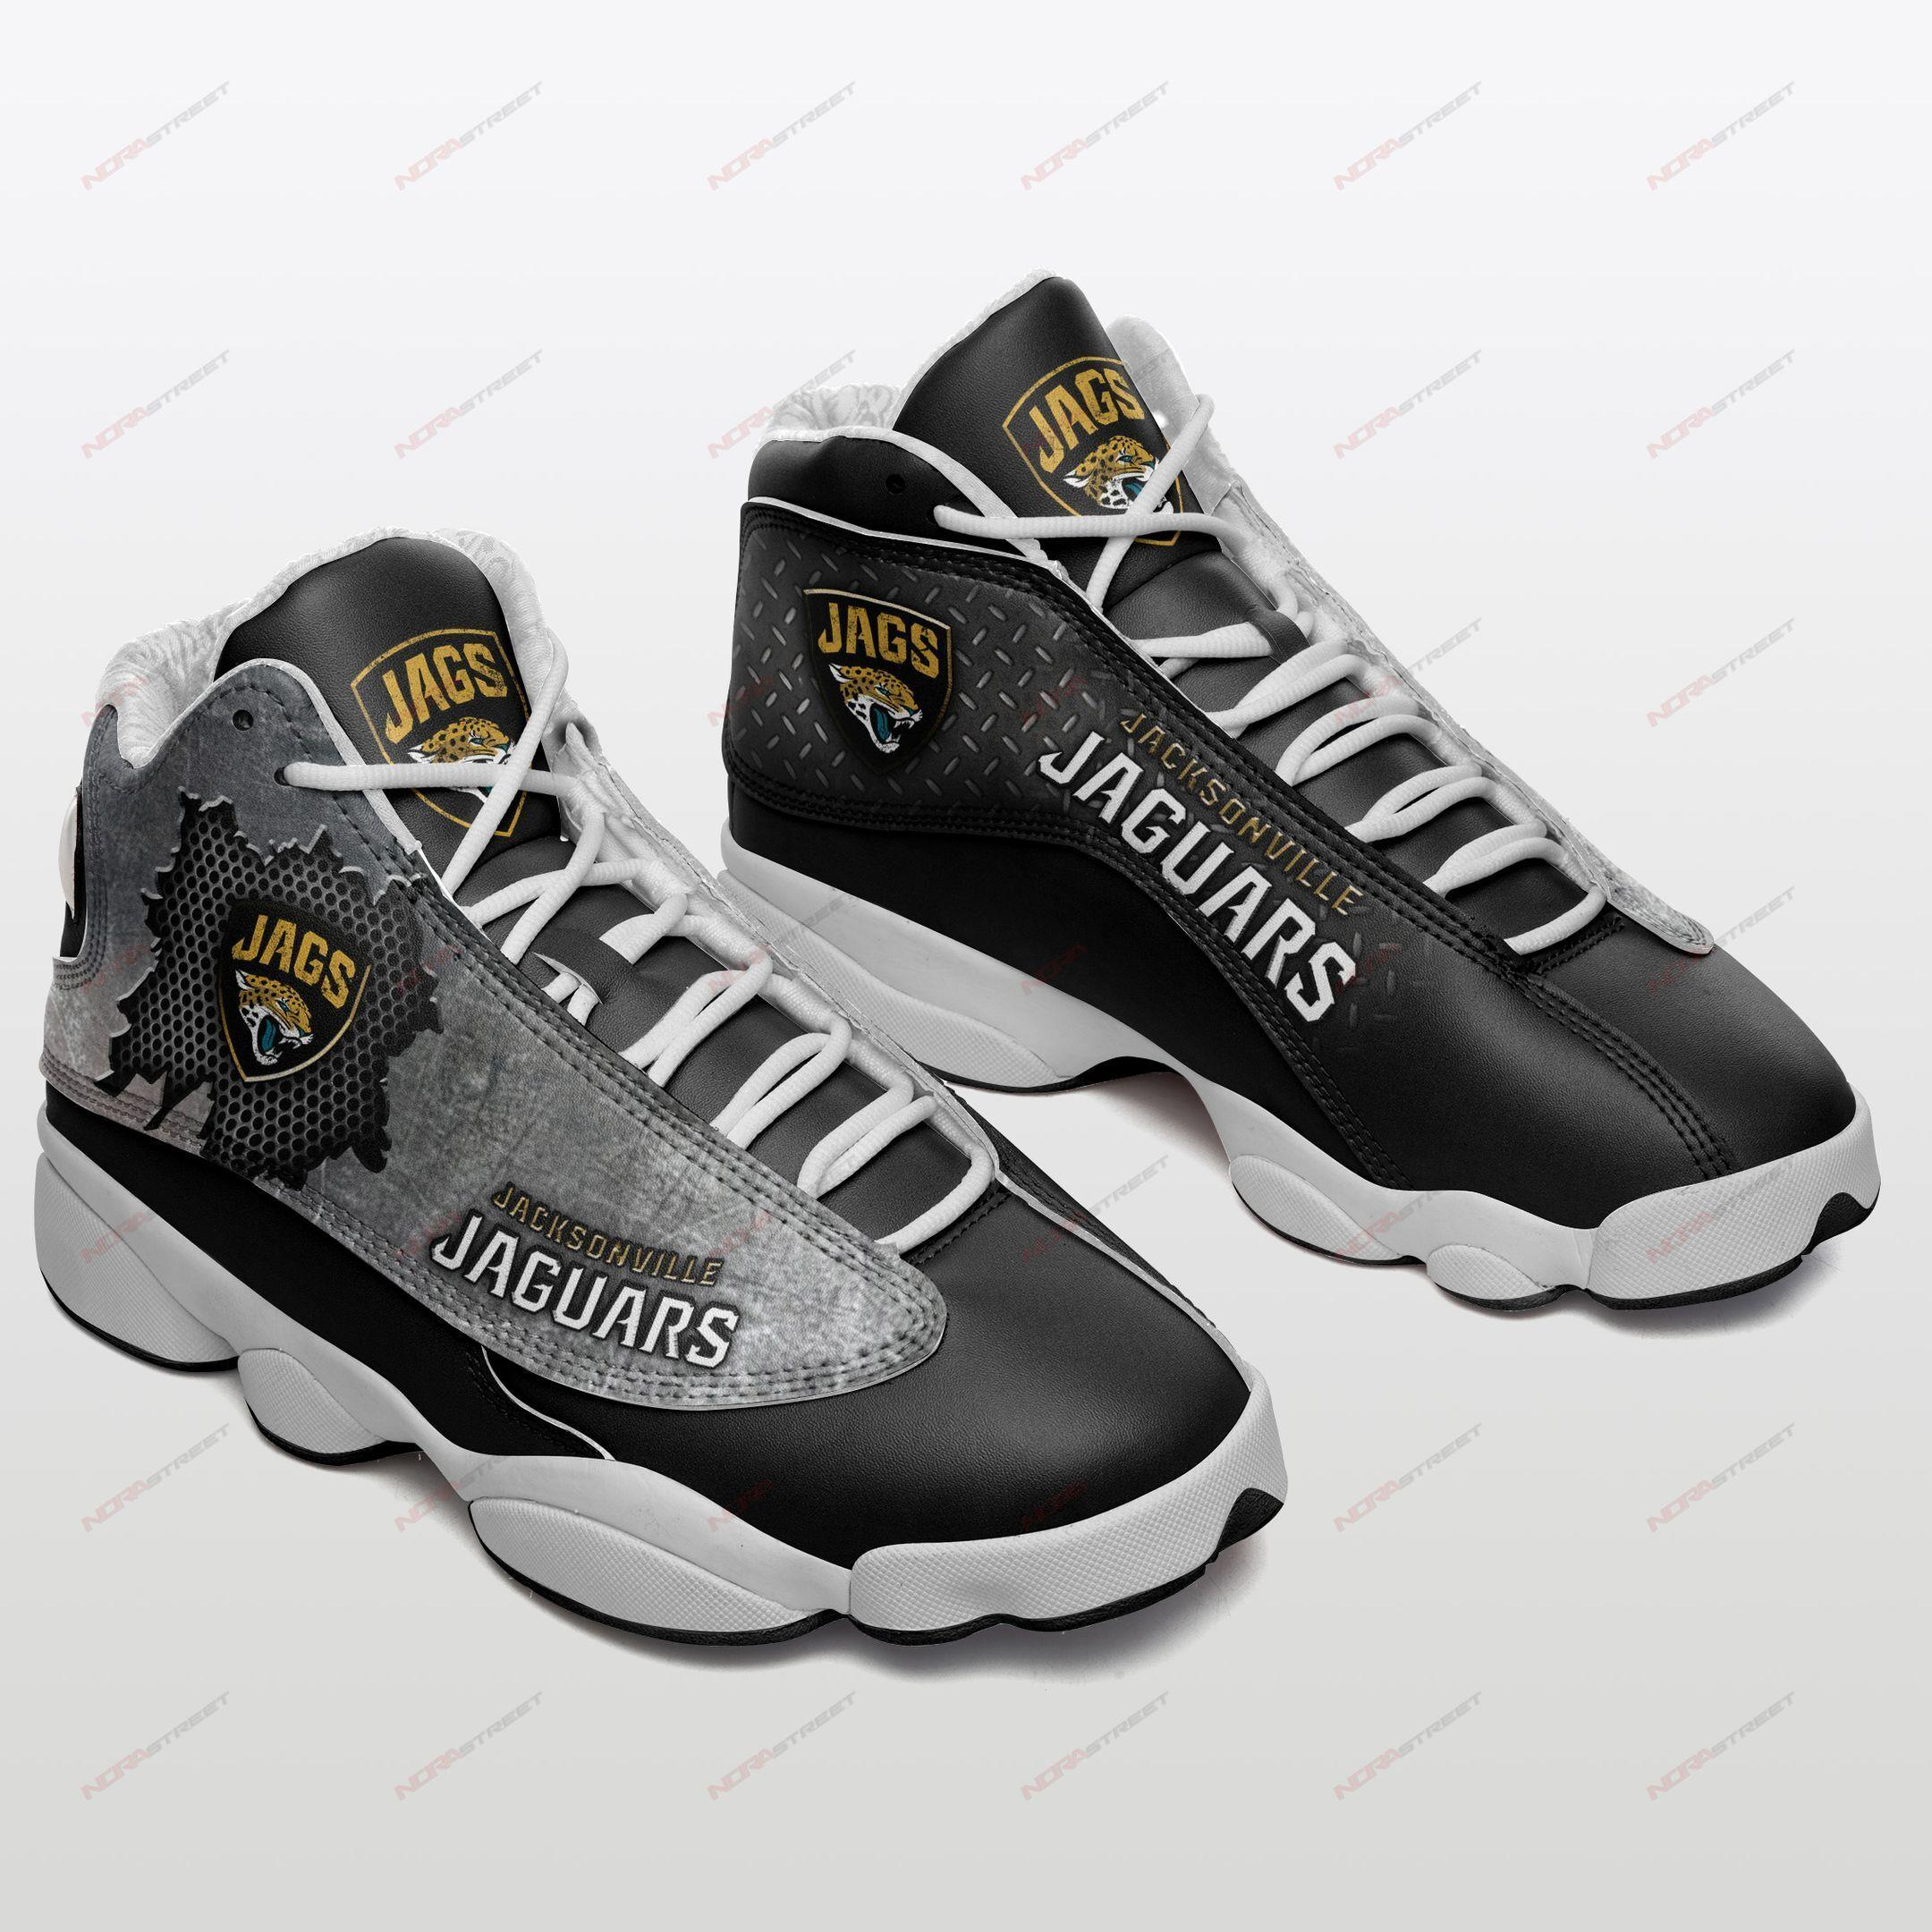 Jacksonville Jaguars Air Jordan 13 Sneakers Sport Shoes Full Size